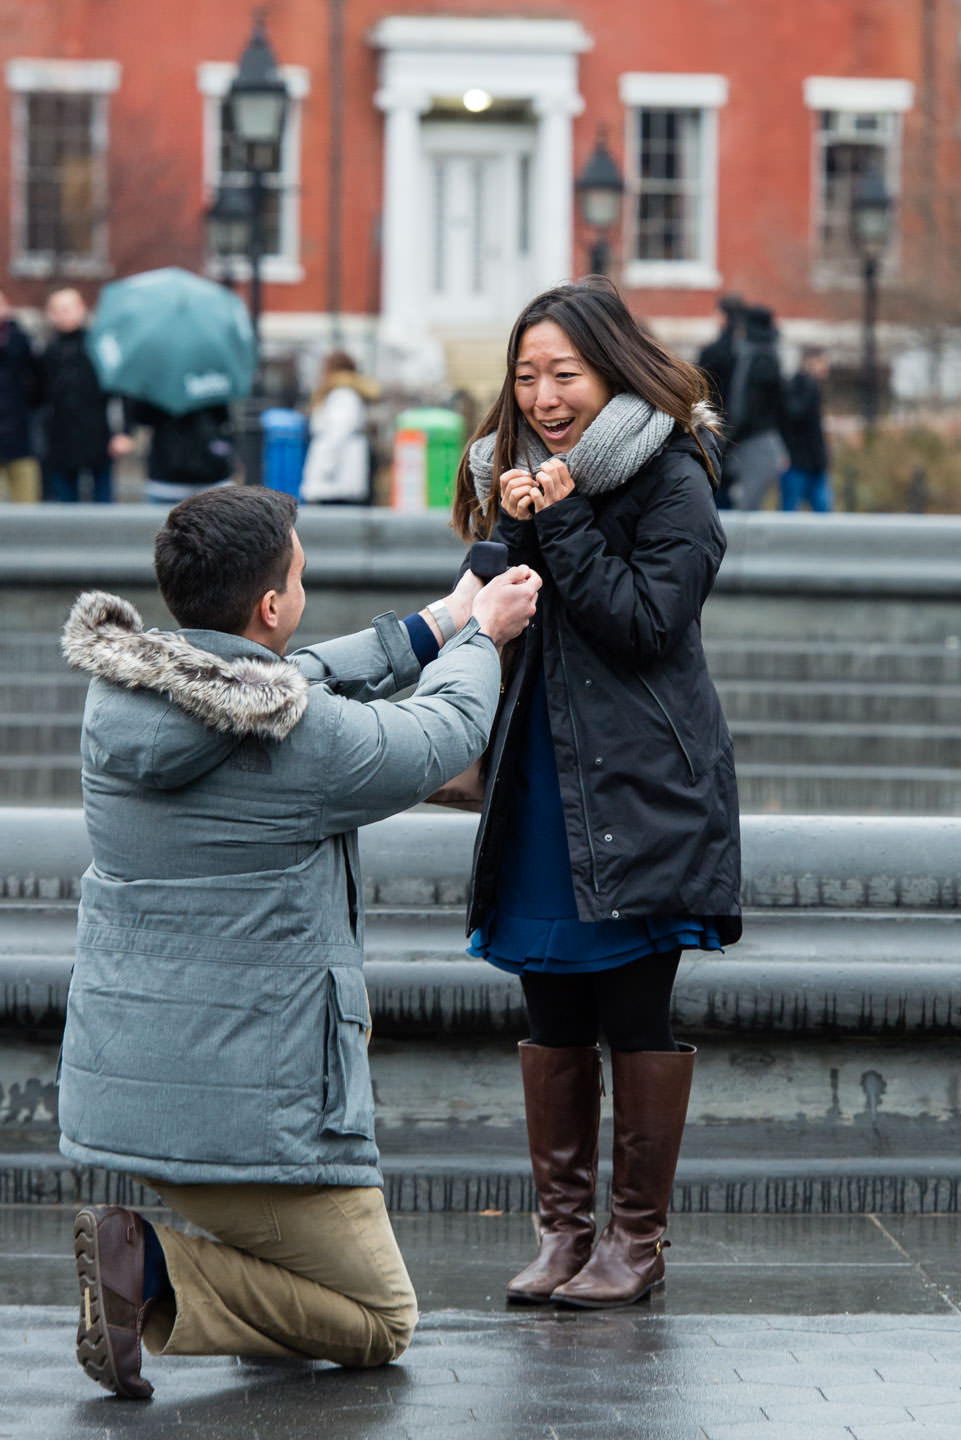 girl very happy as guy is proposing to her in washington square park in winter